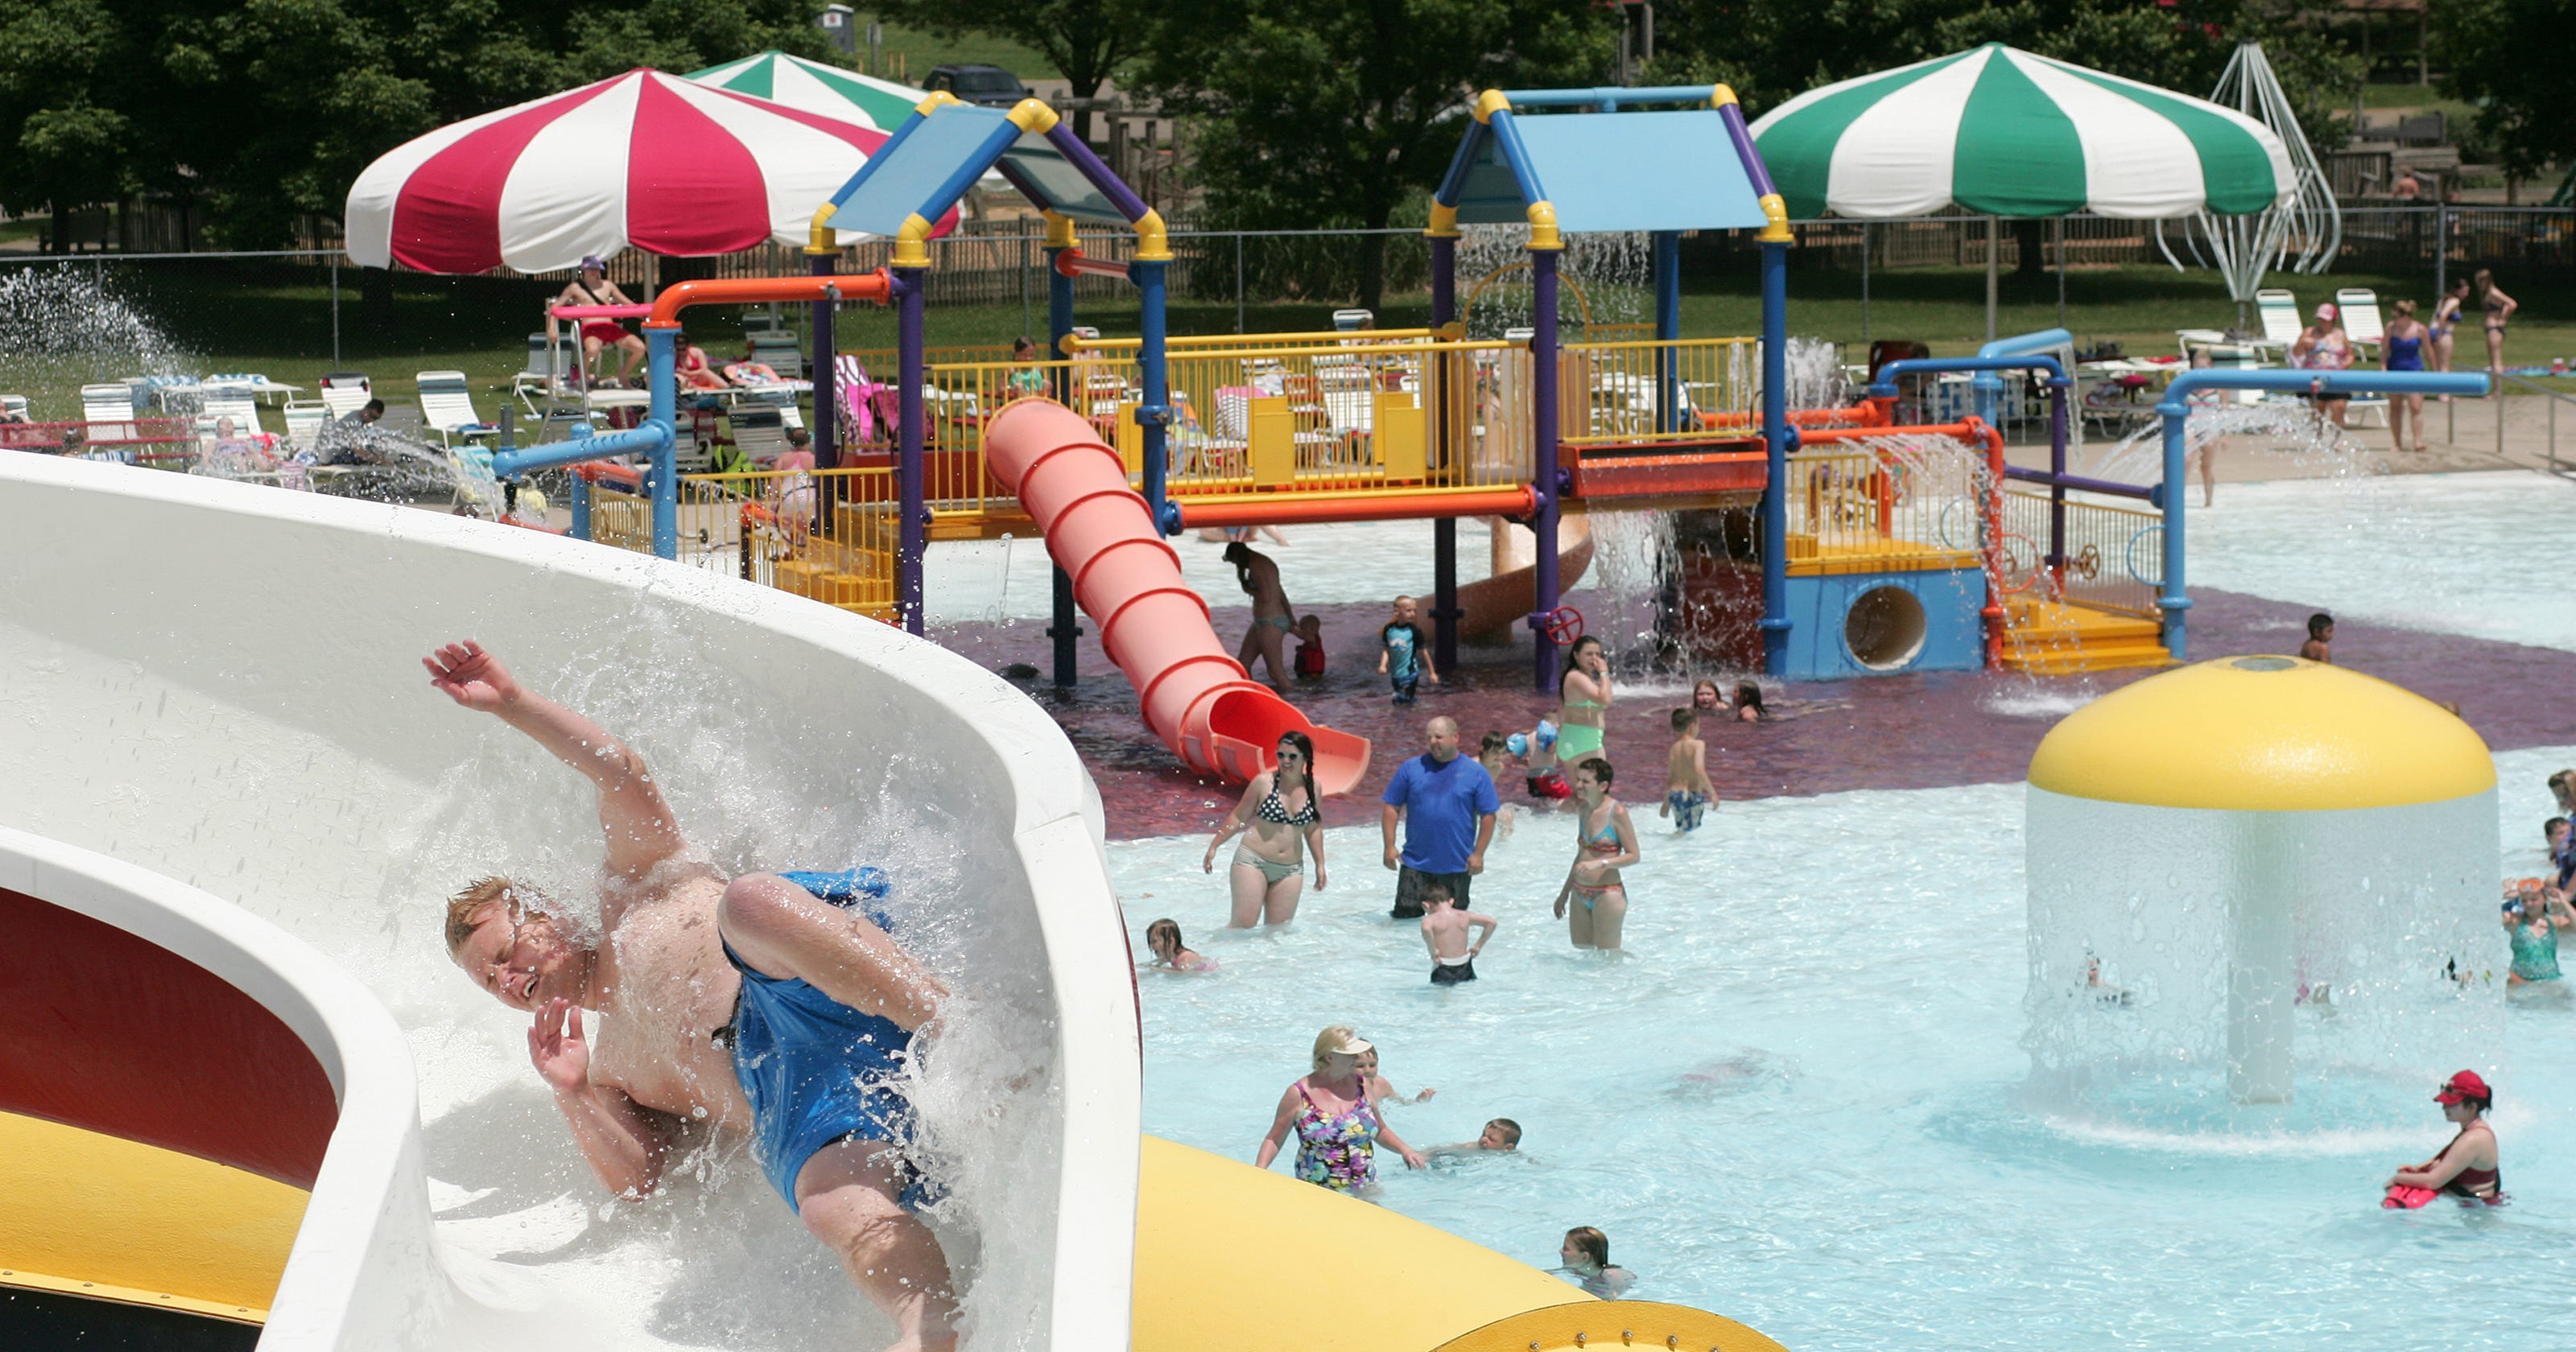 School 39 s out for summer pools open - Public swimming pools greensboro nc ...